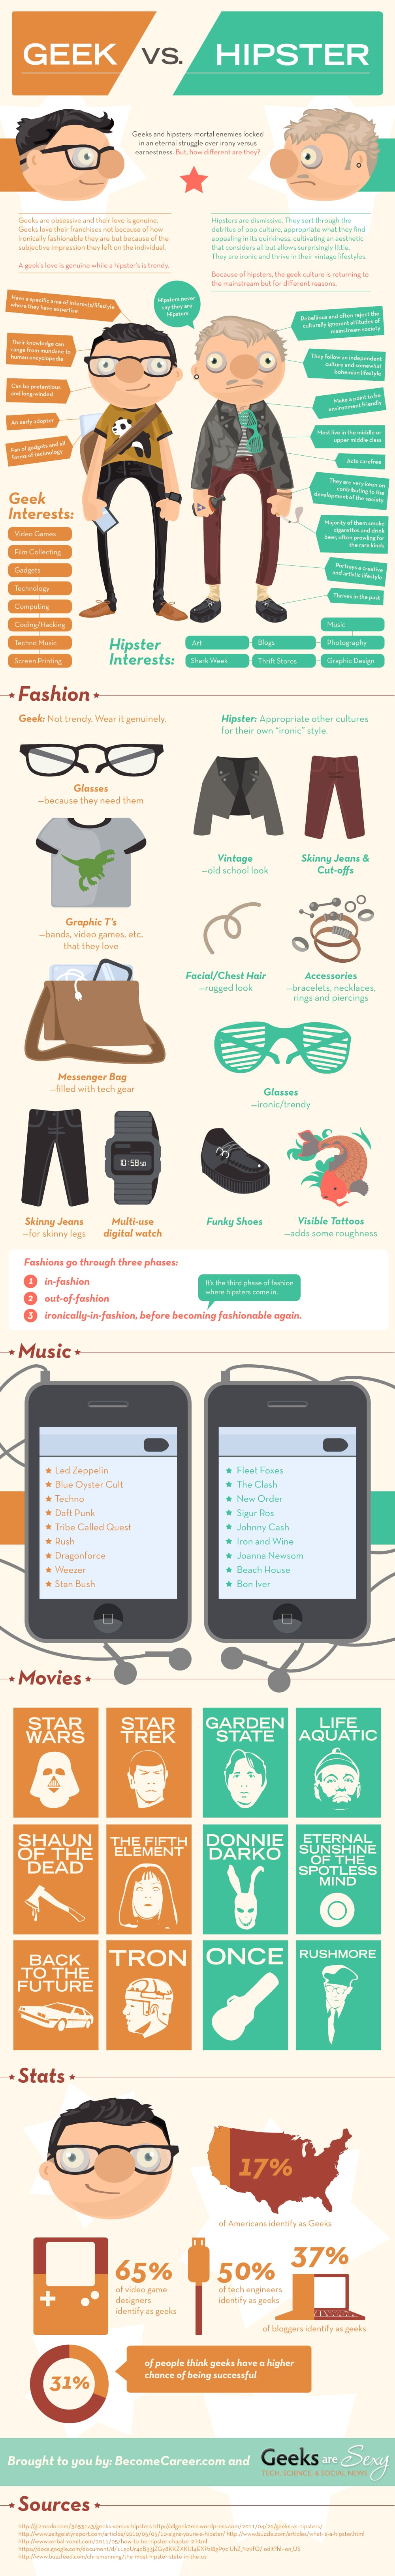 geeks-vs-hispters-infographic